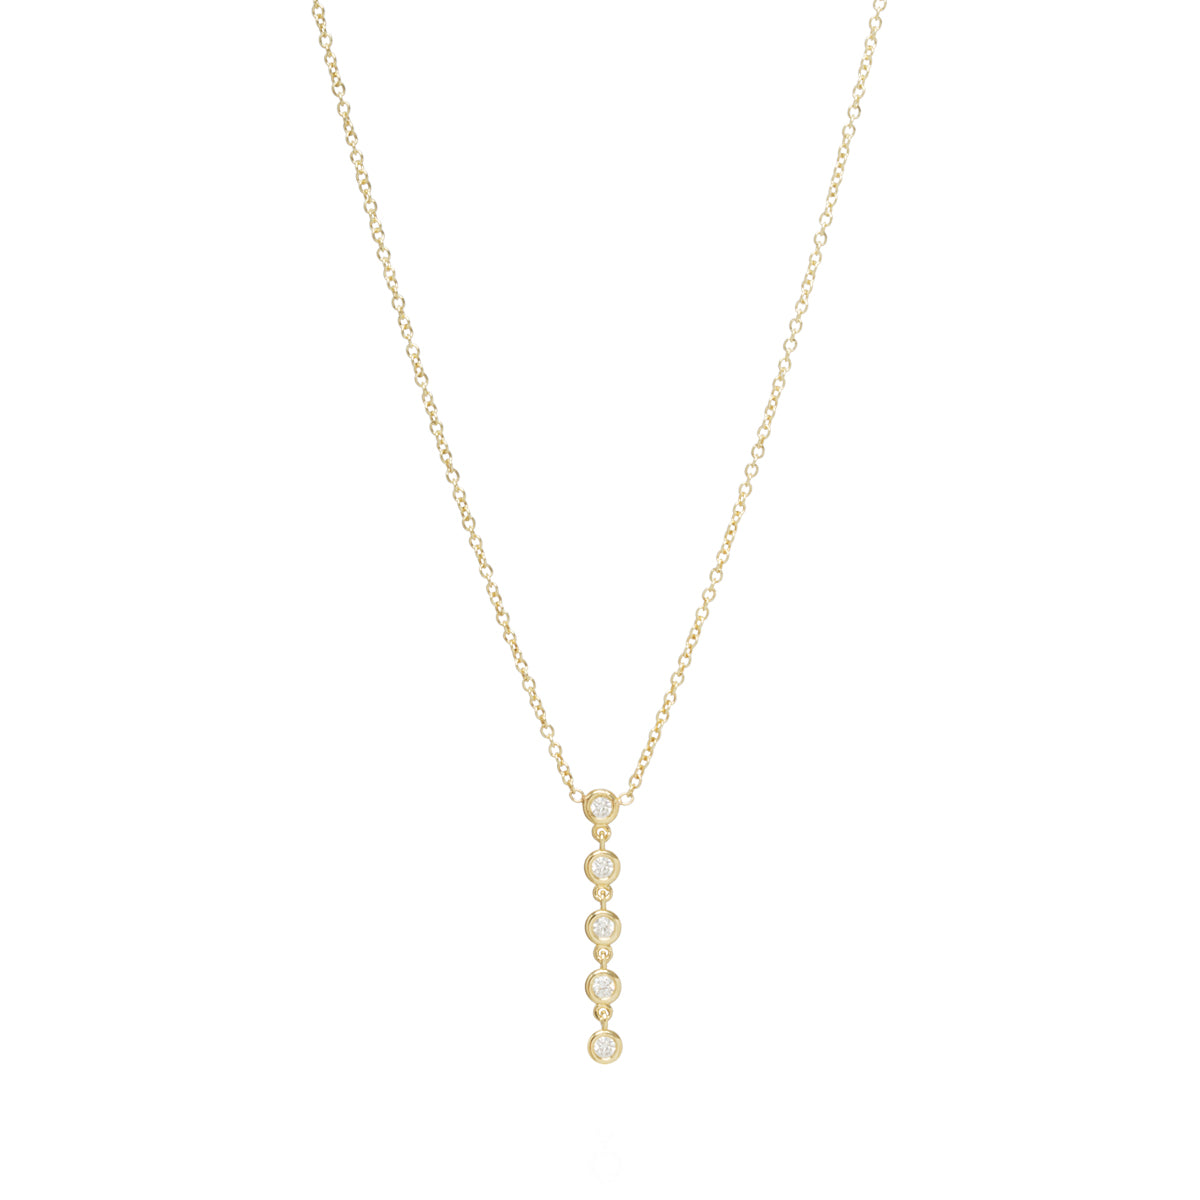 Zoë Chicco 14kt Yellow Gold 5 Linked Floating White Diamonds Y Necklace